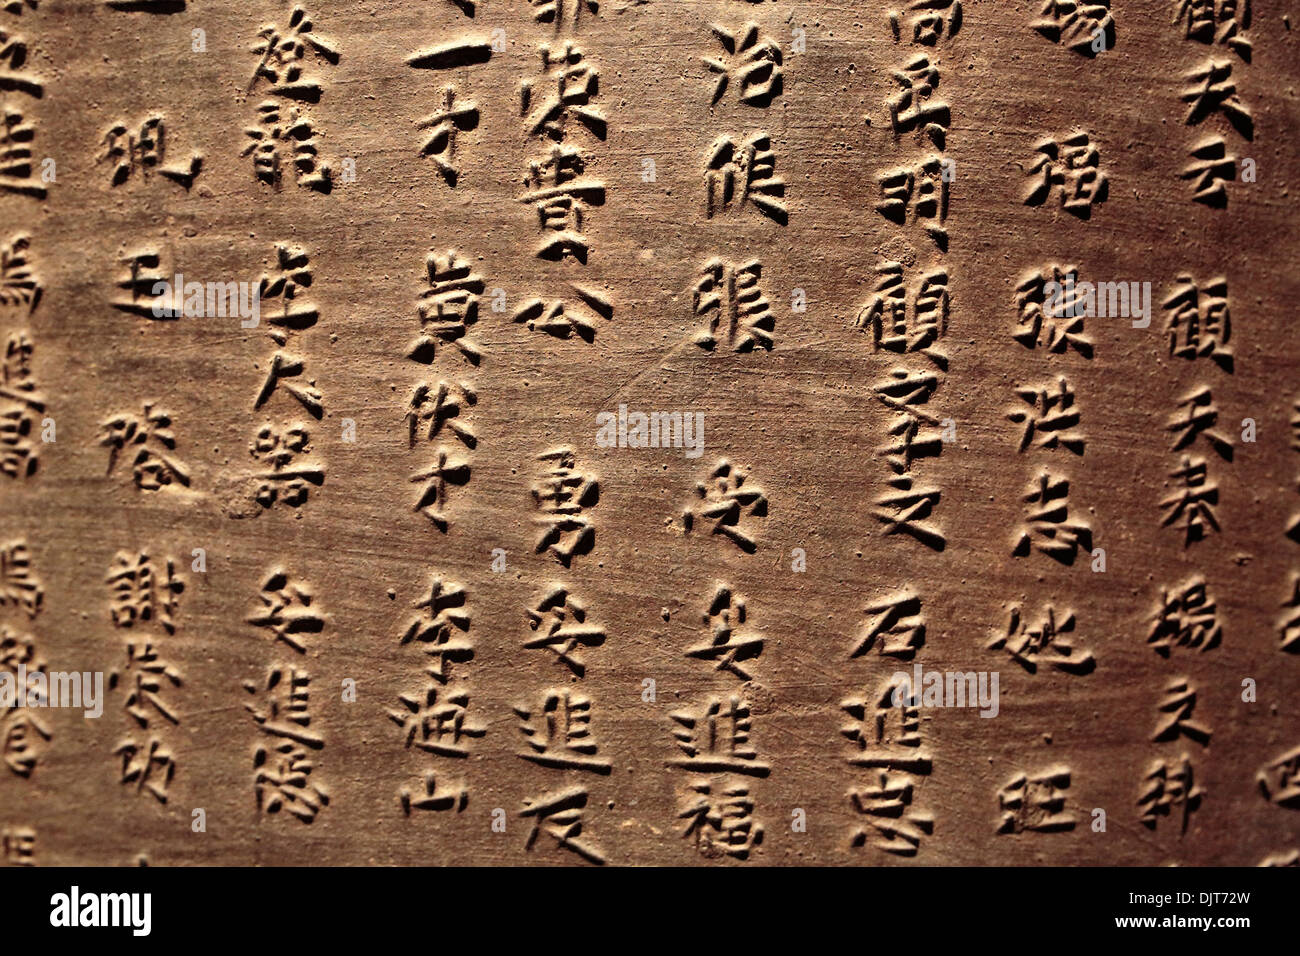 Hieroglyph inscription on bronze bell, Dunhuang city museum, Dunhuang, Gansu province, China - Stock Image